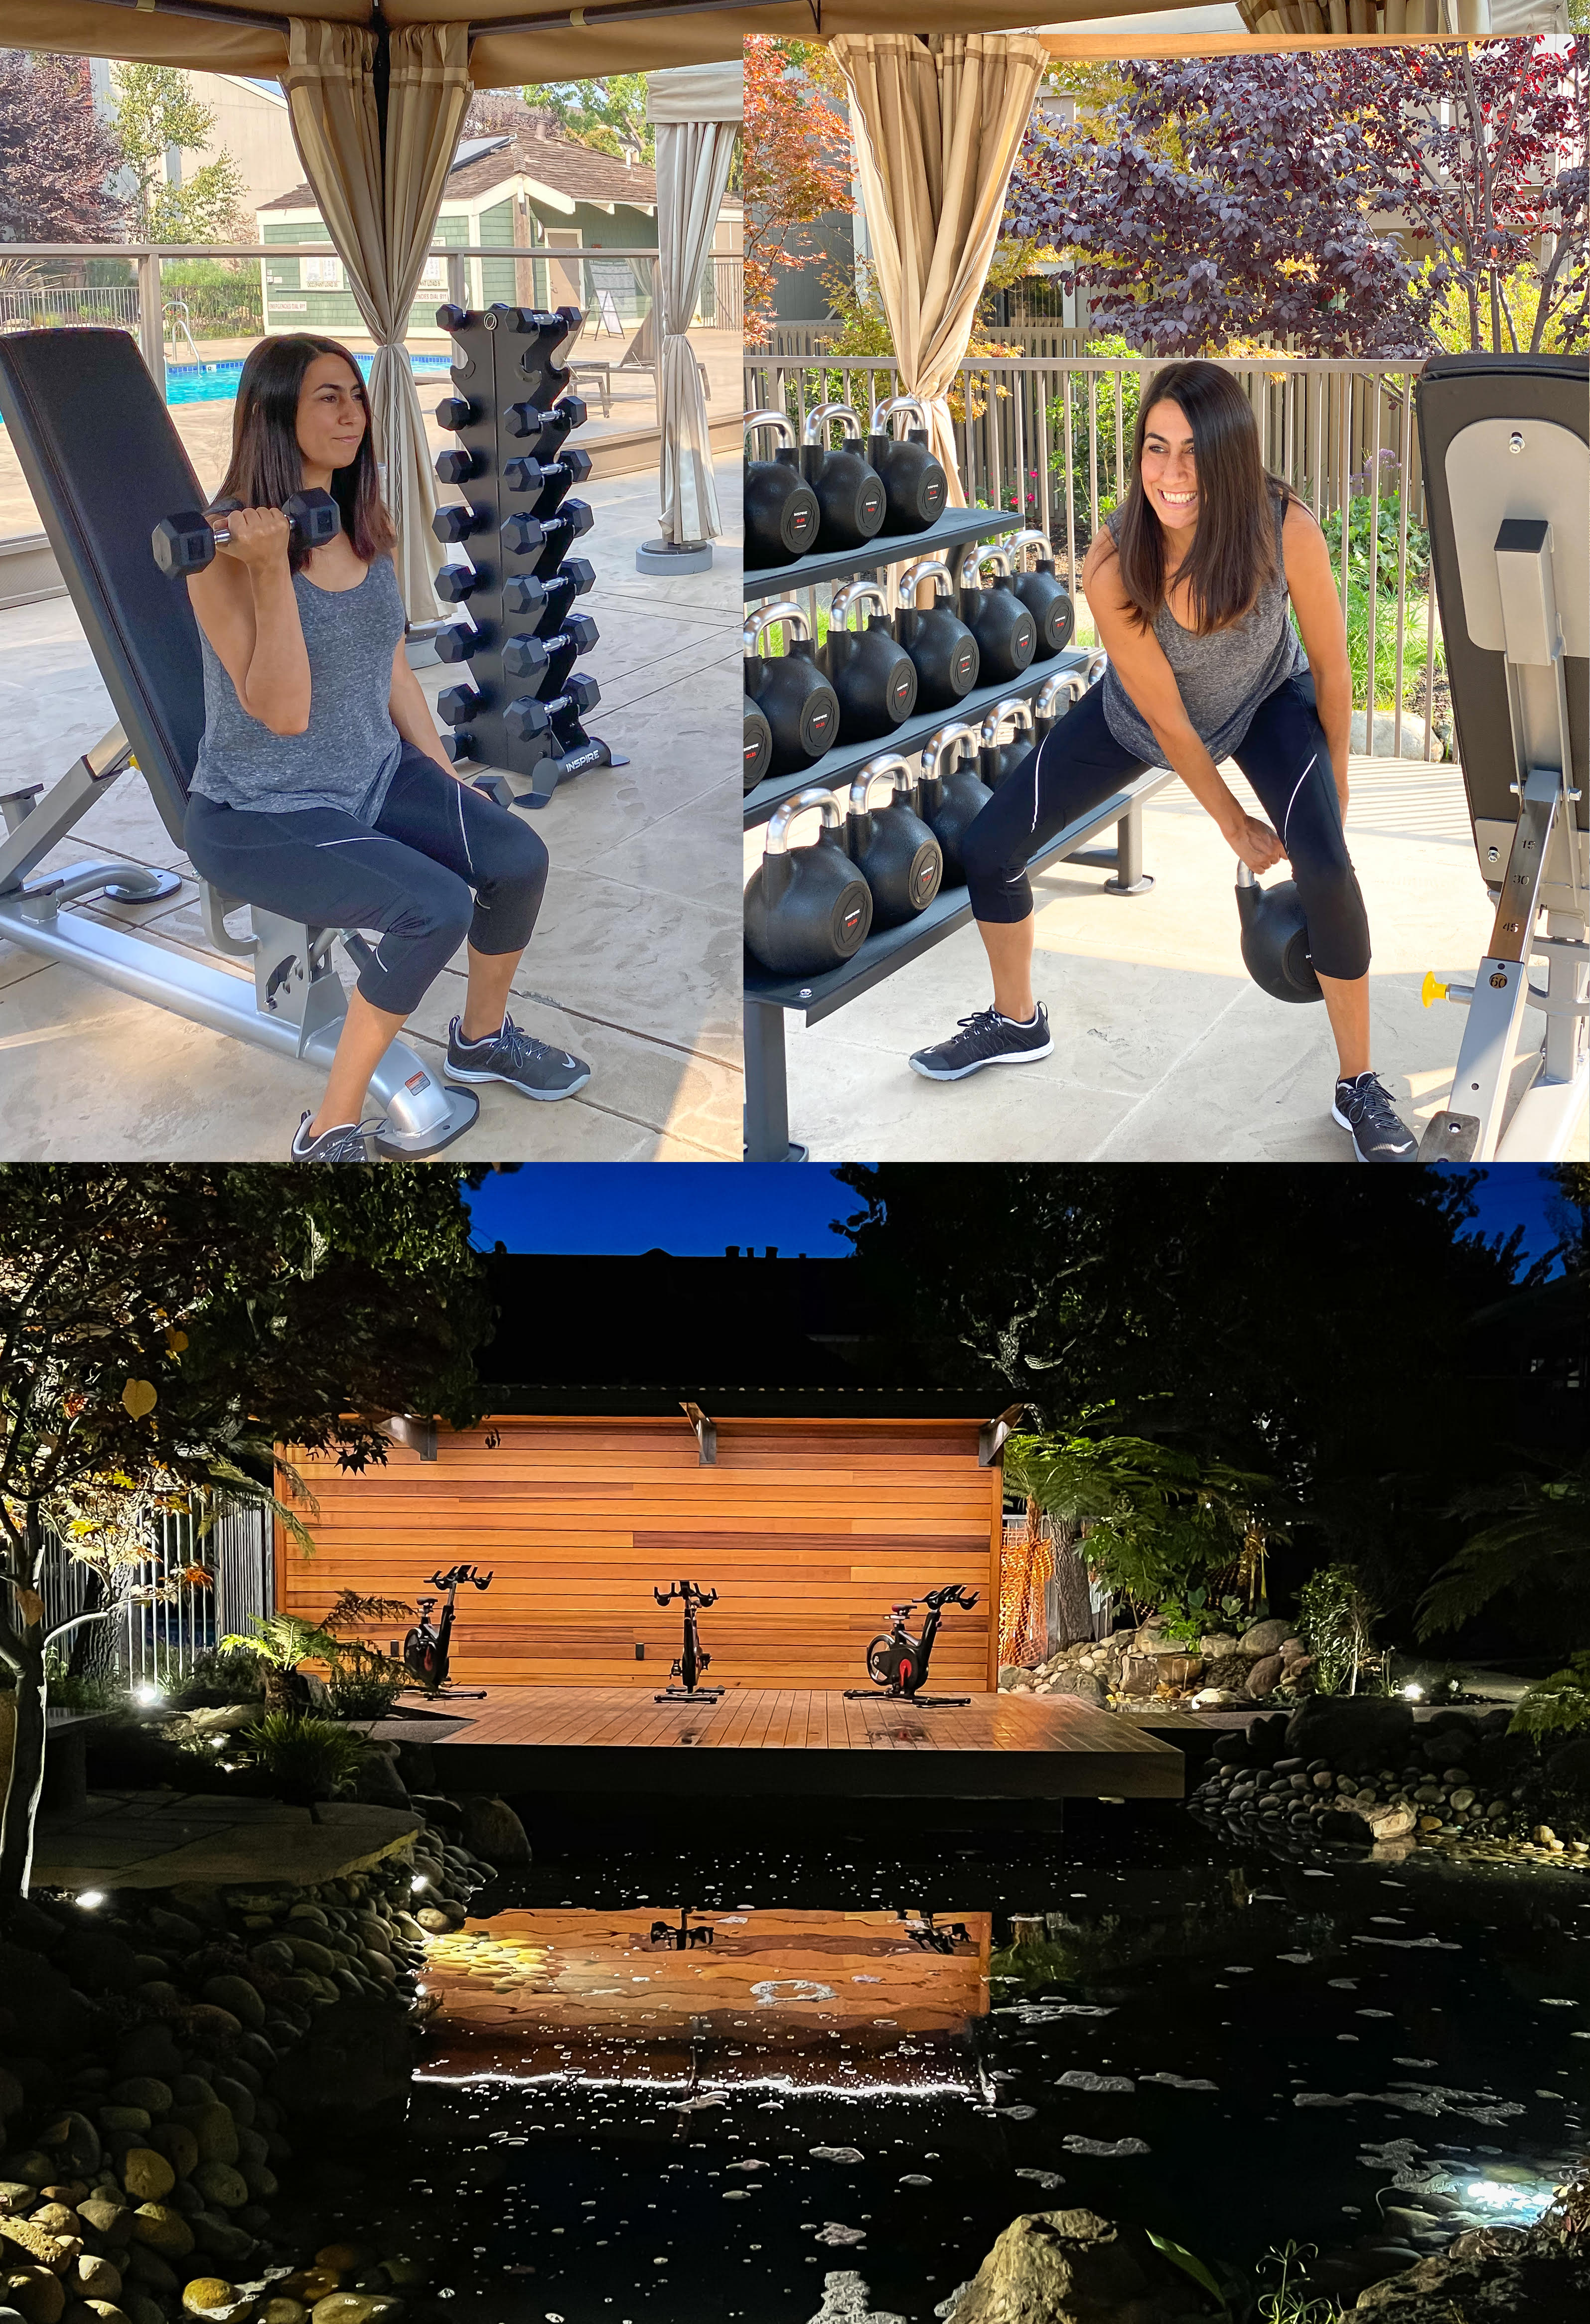 Resident working out at the fitness center at Greendale Apartments in Mountain View, California